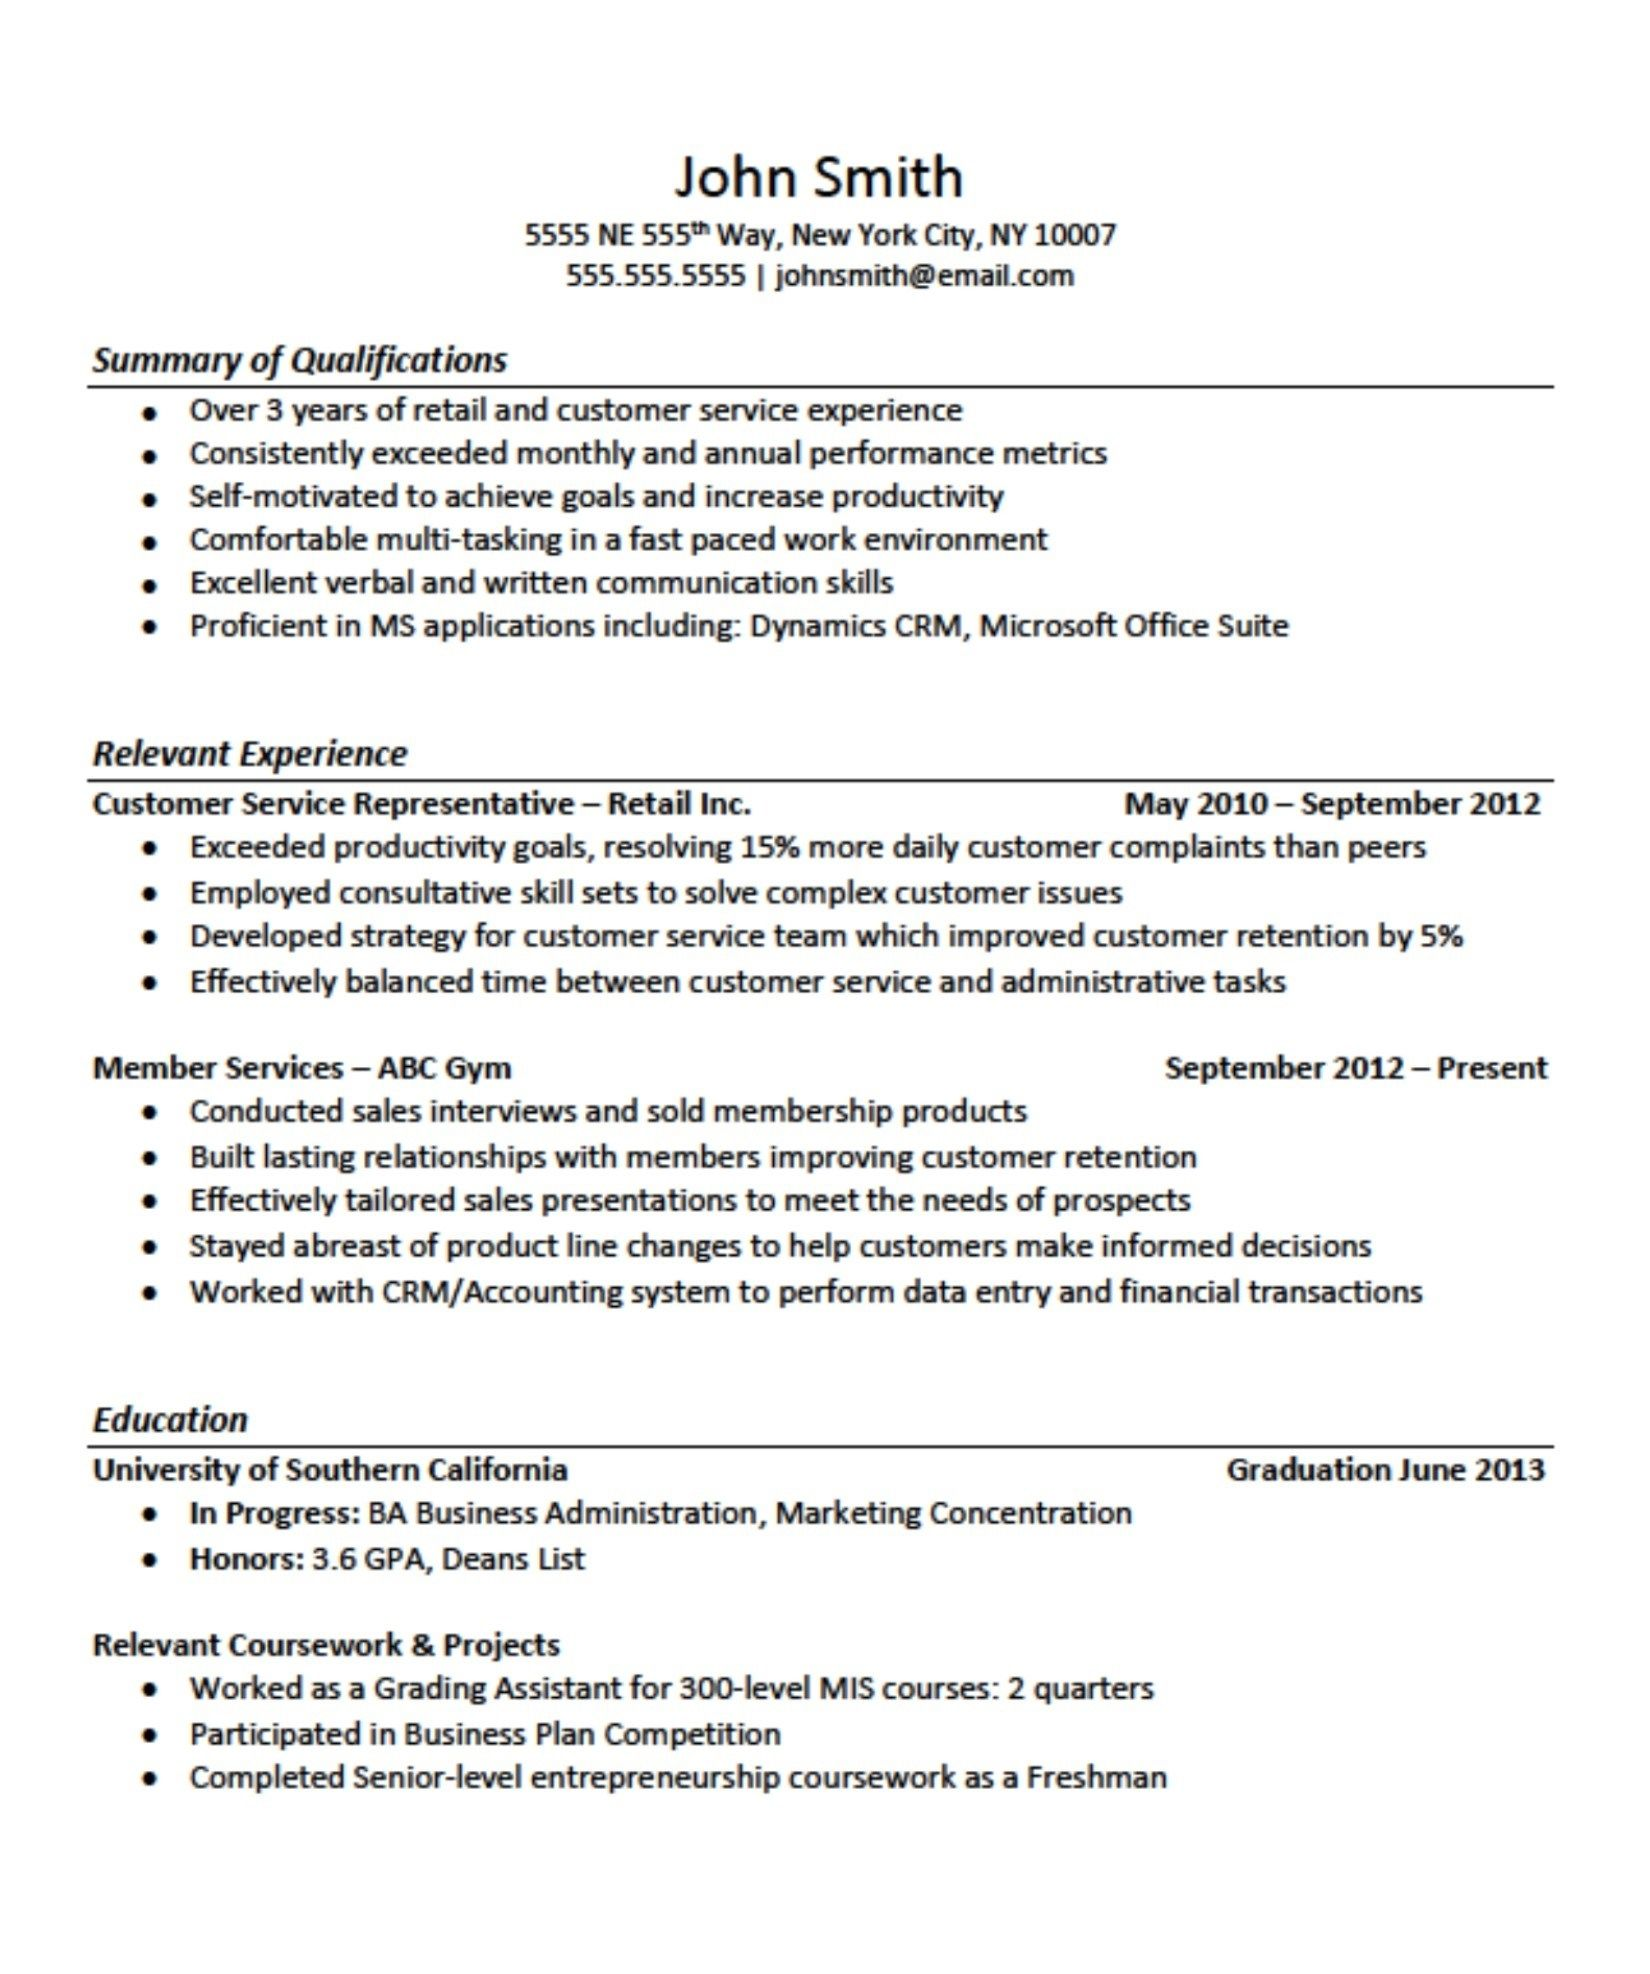 Resume For Someone With No Job Experience Resume Examples No Job Experience  Pinterest  Resume Examples Job .